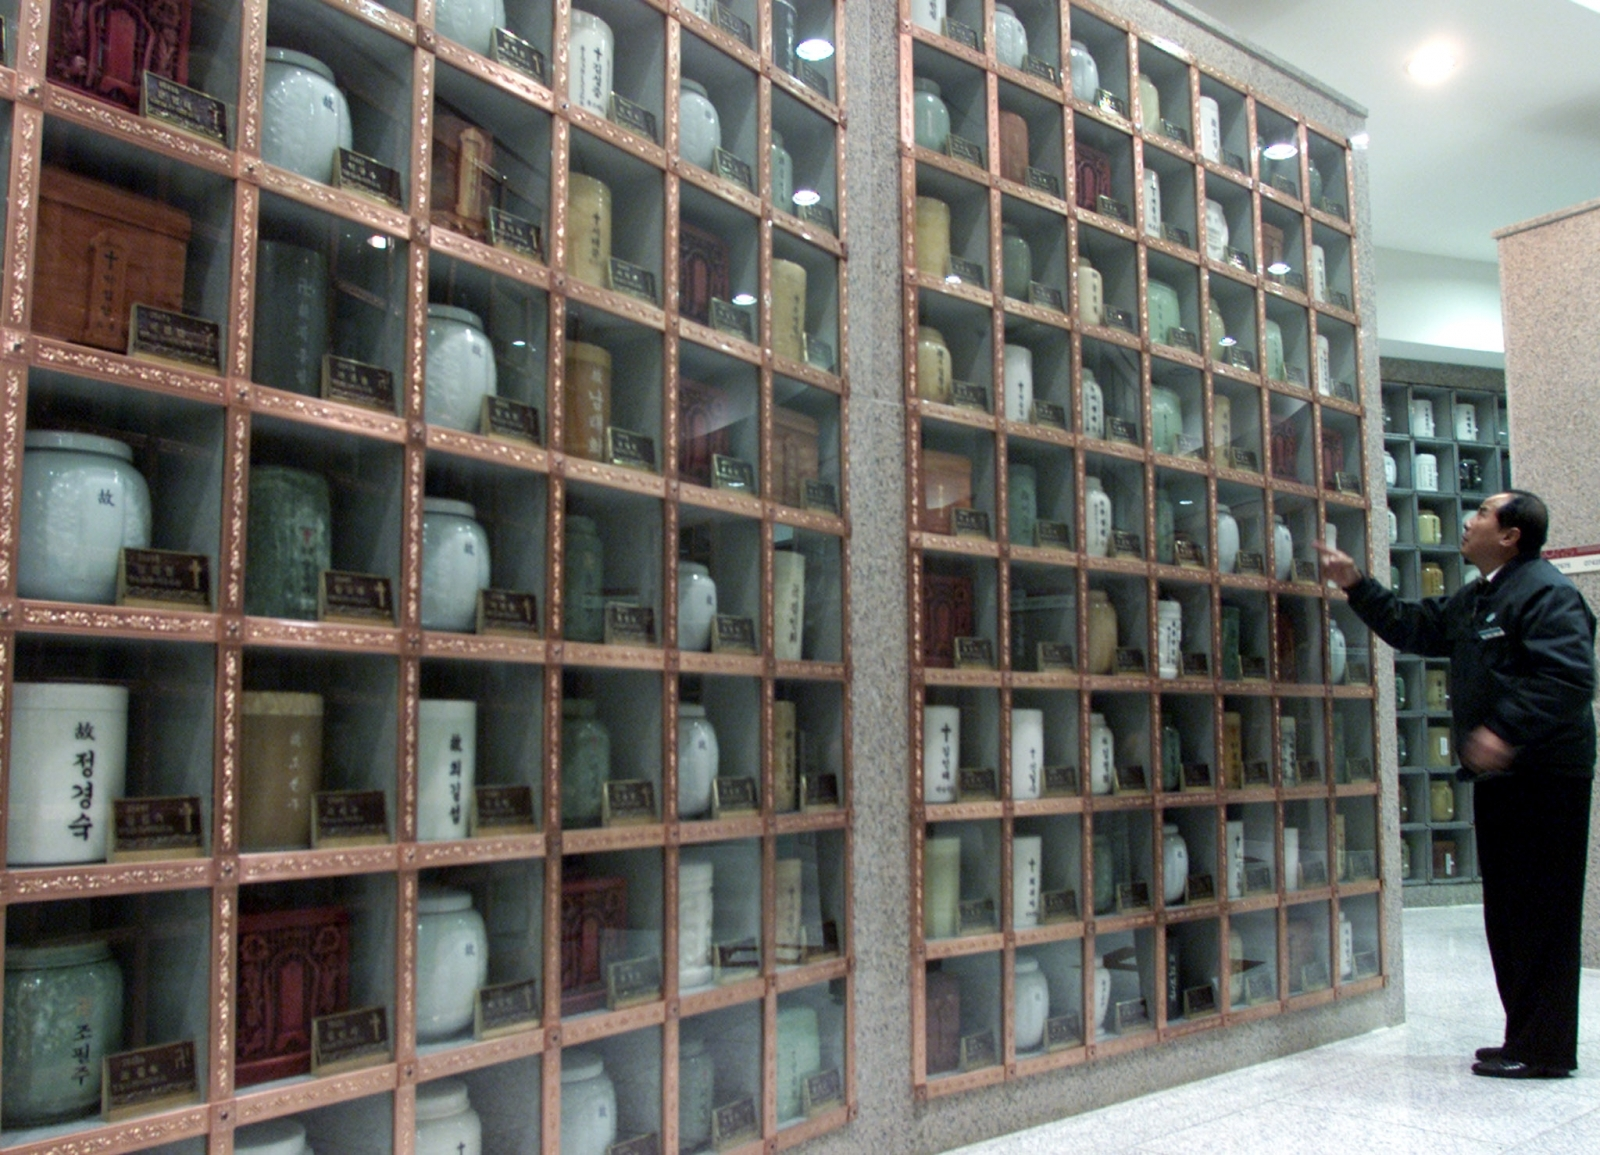 Urns in South Korea